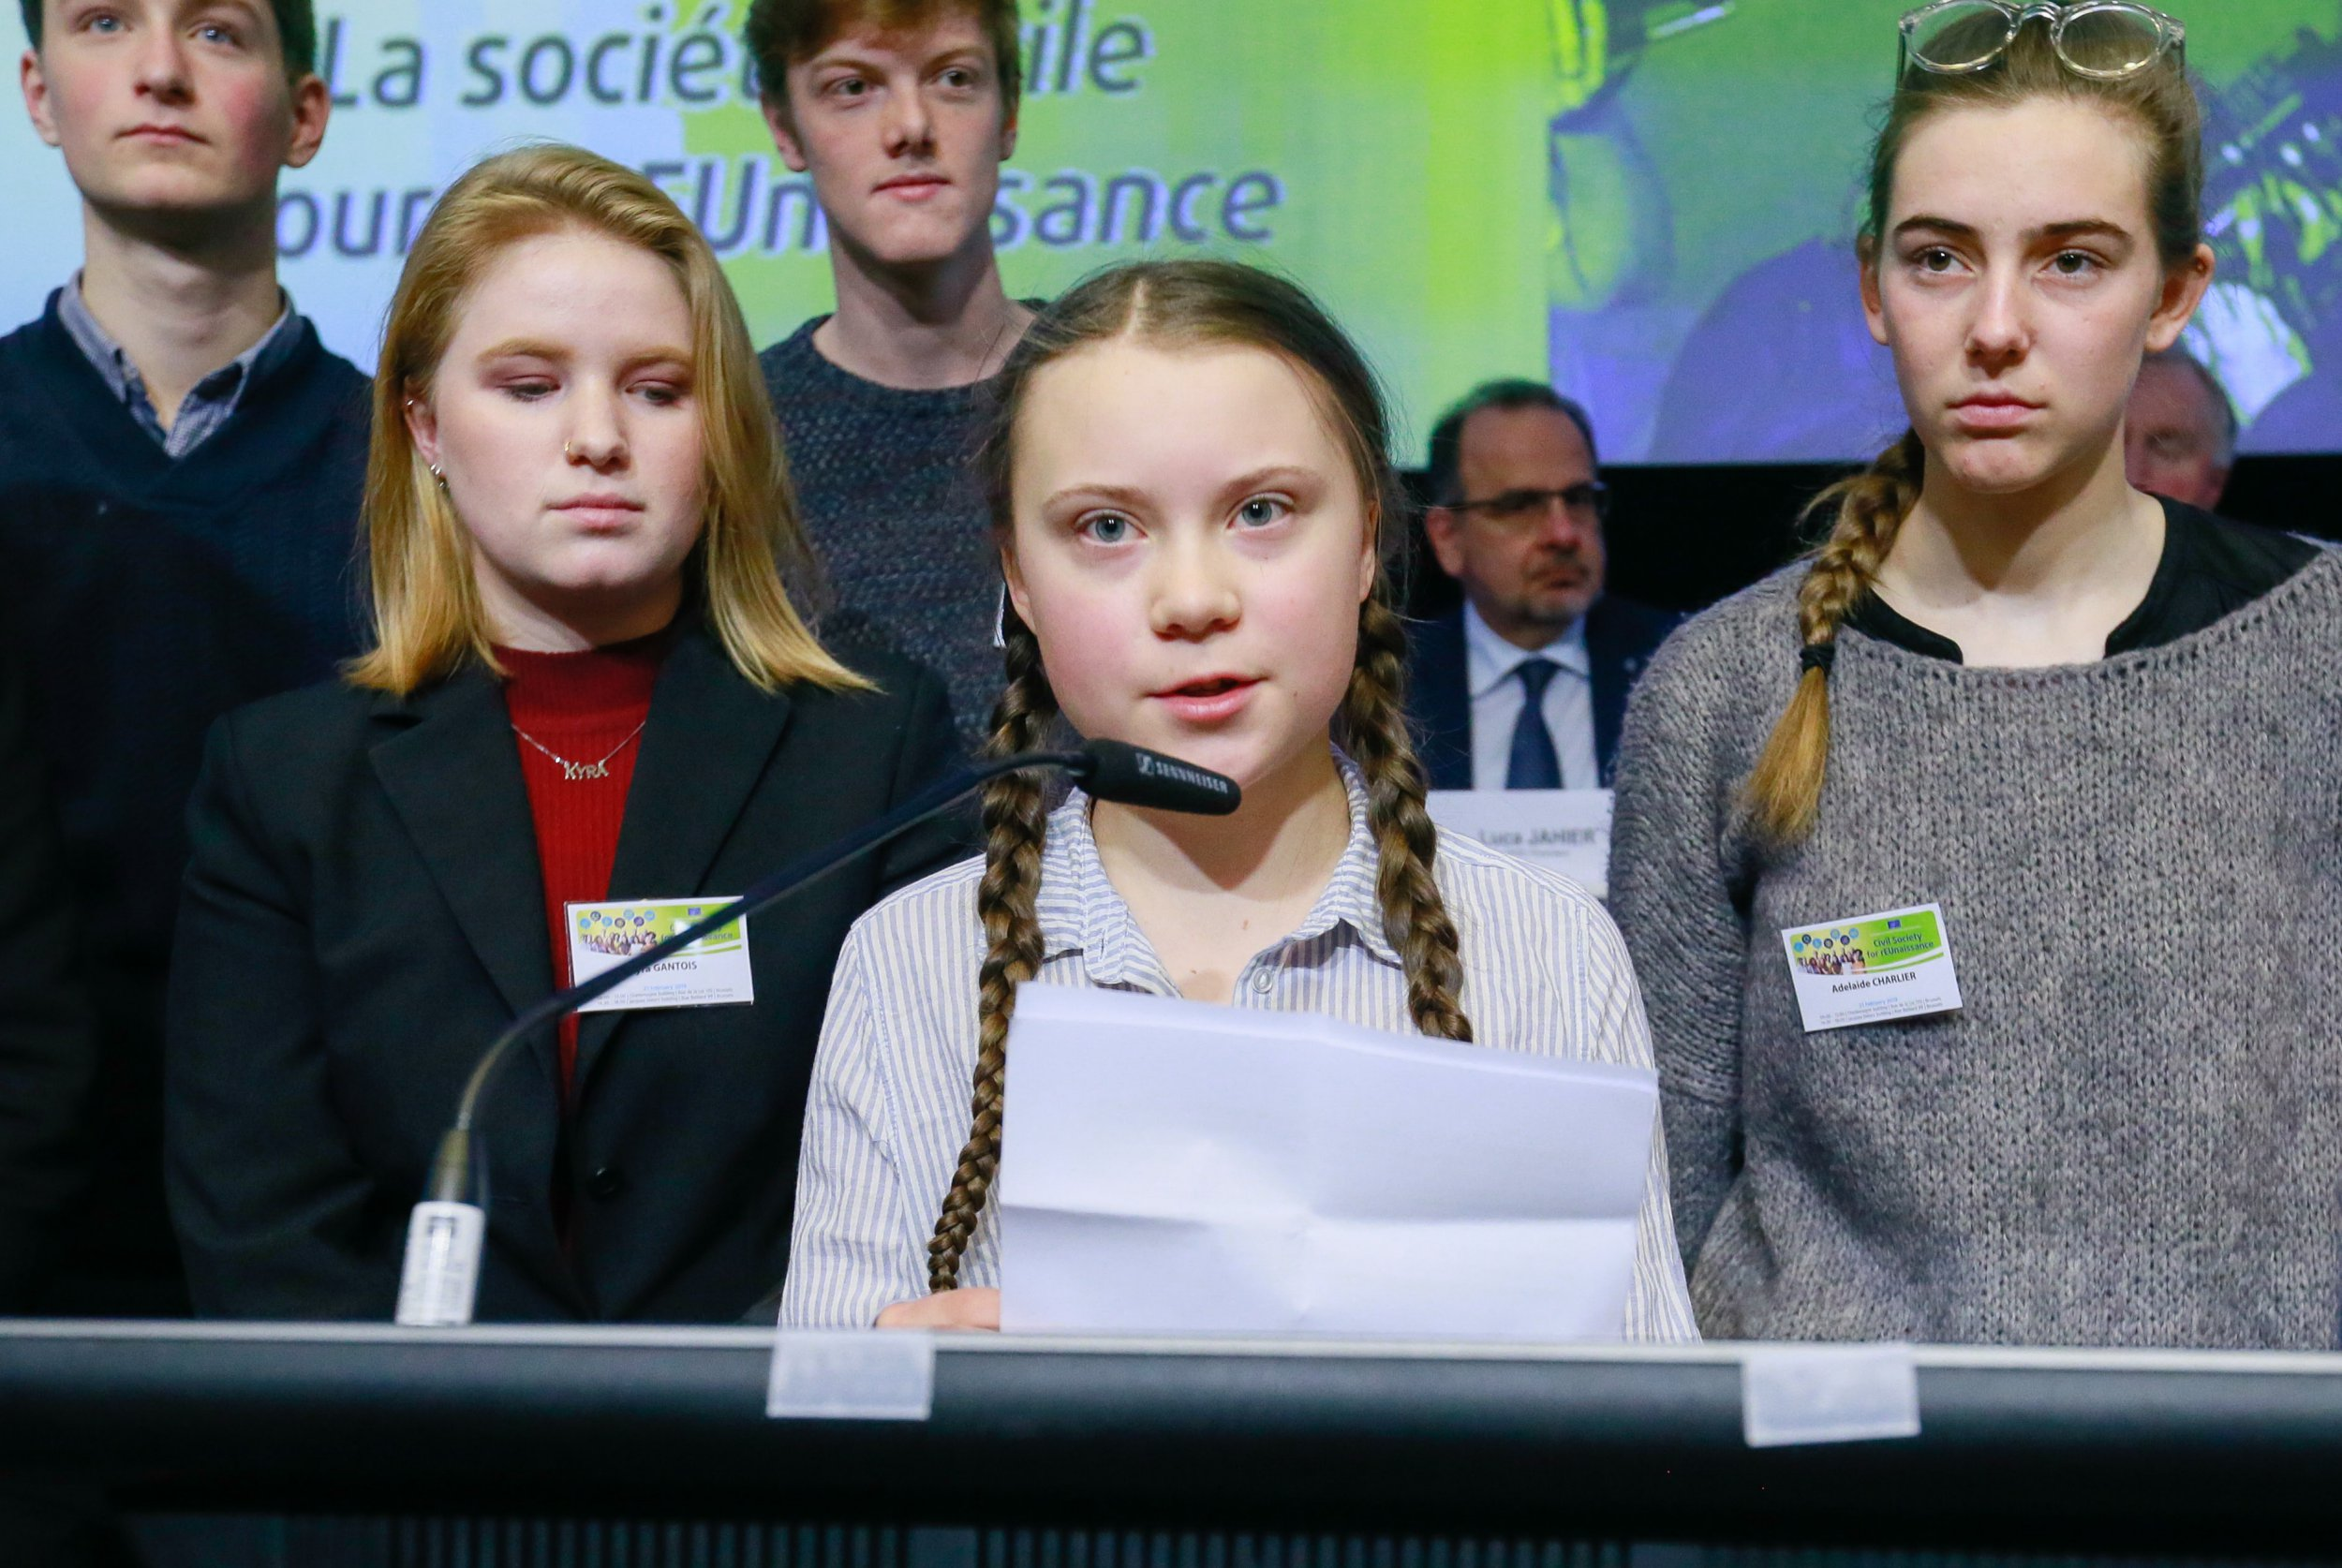 Young activist gives powerful speech telling EU why we should all go on climate strike